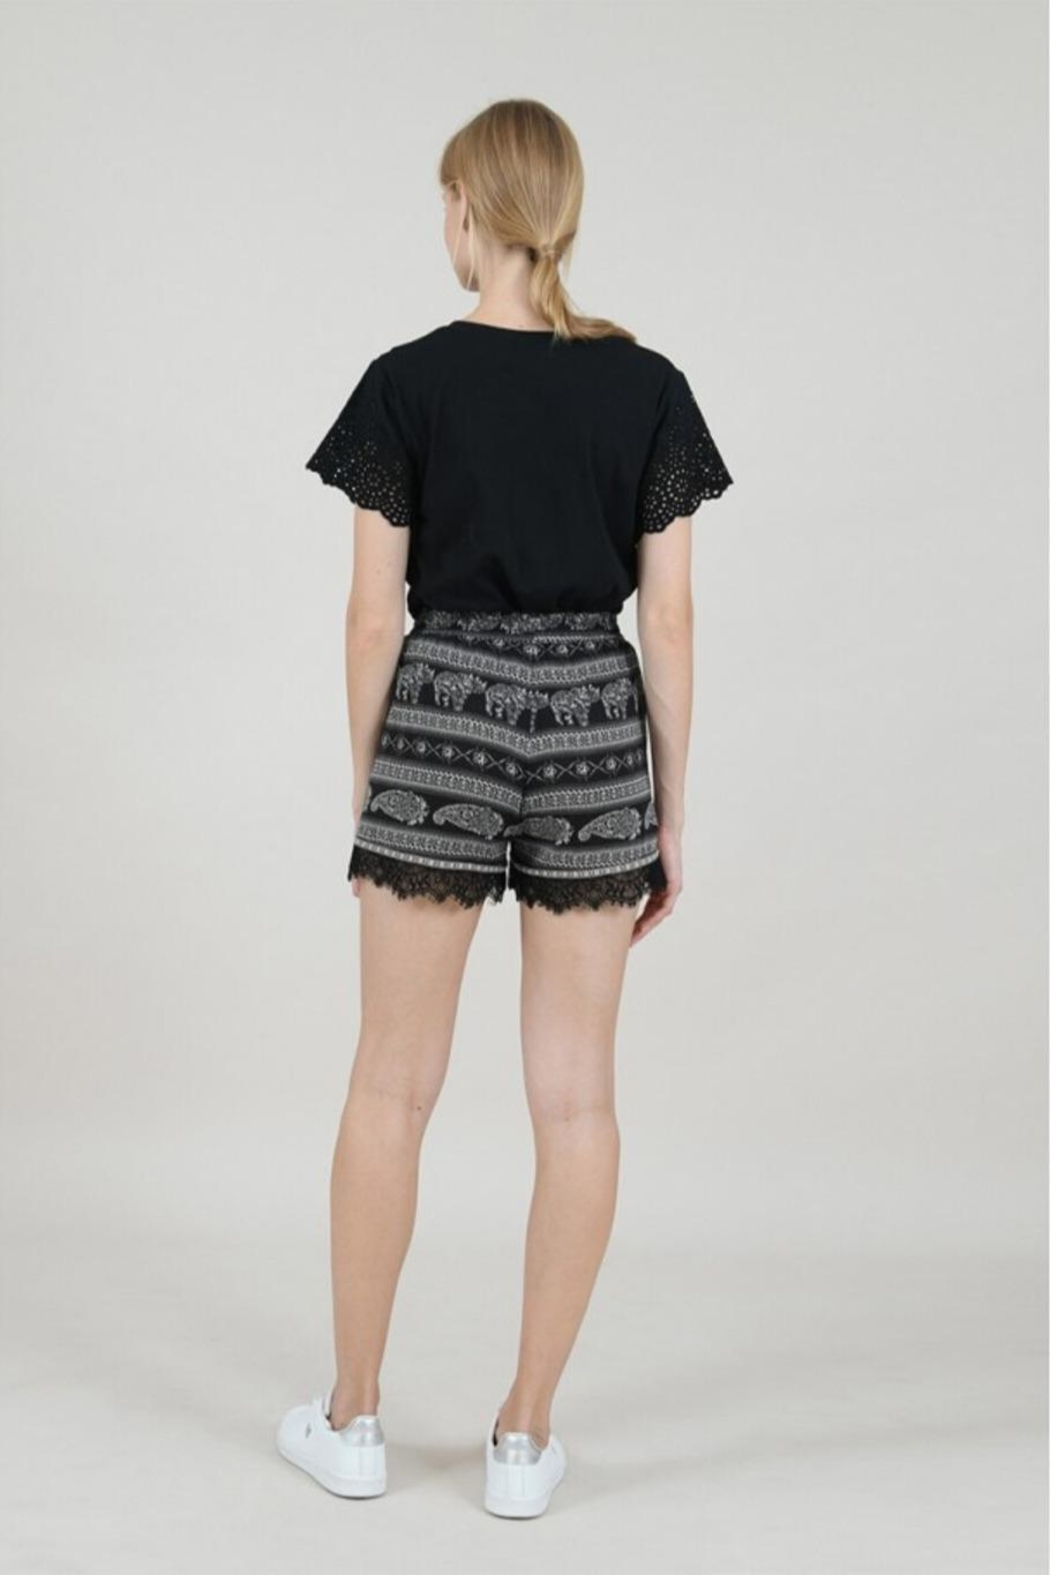 Molly Bracken Printed Lace Shorts - Side Cropped Image